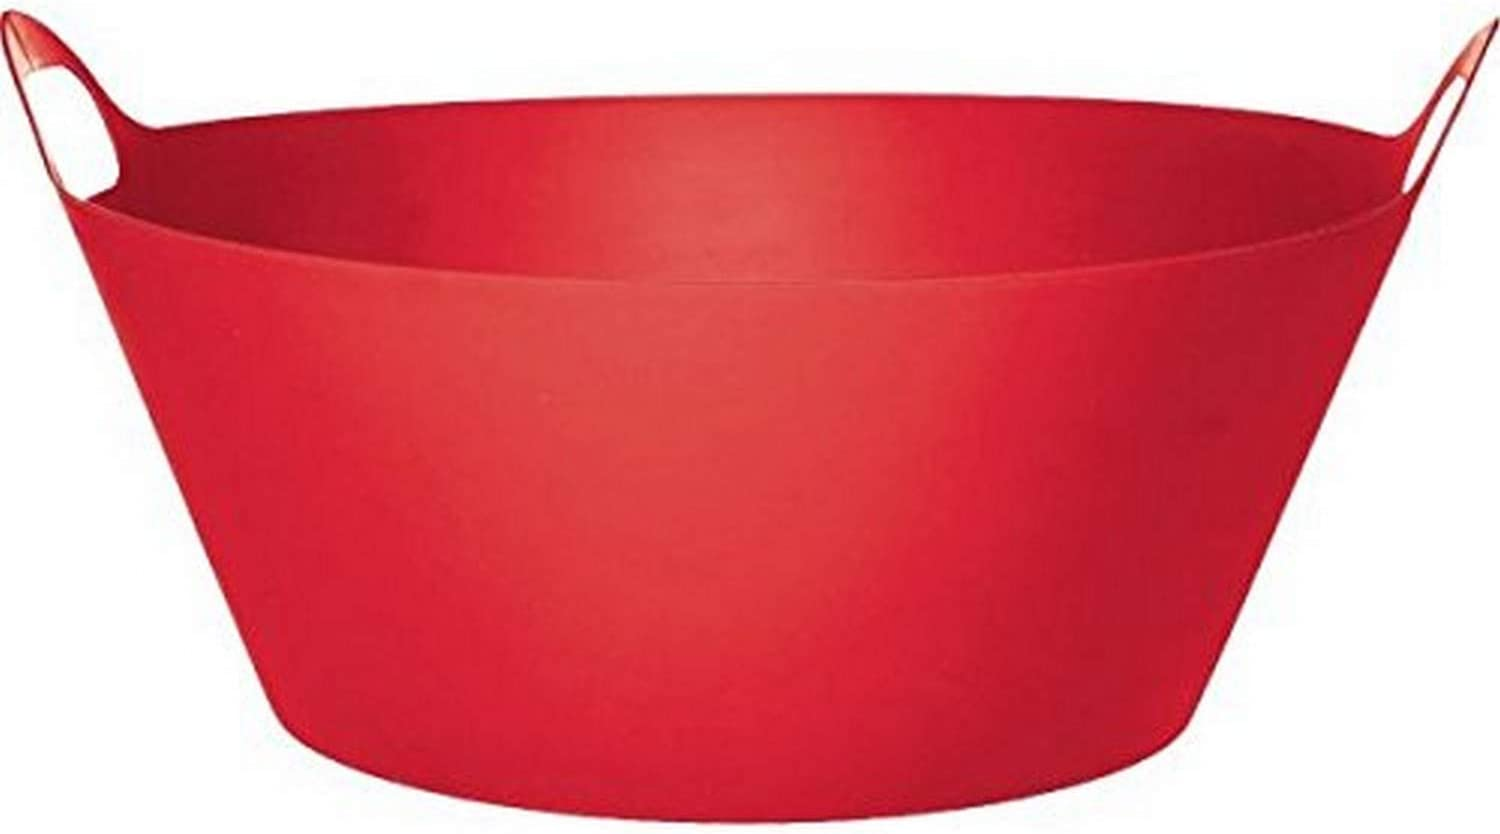 Grasslands Road Red Plastic Party Drink Chiller, 1 Piece, Made from Plastic, Red, 20